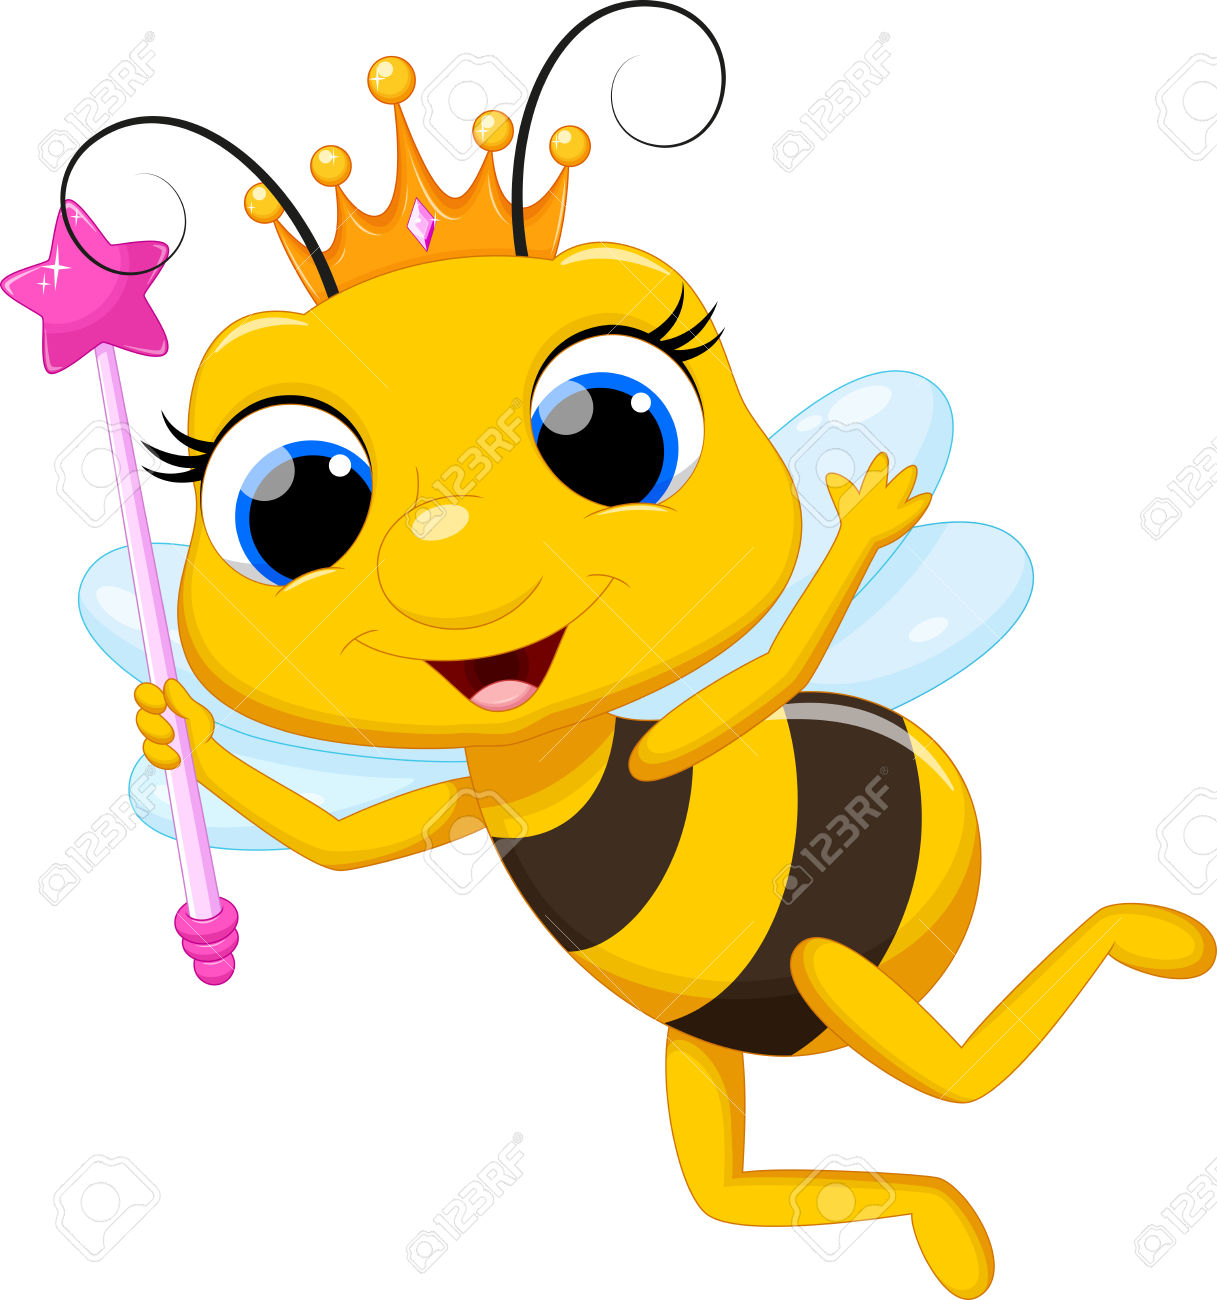 1,534 Queen Bee Stock Vector Illustration And Royalty Free Queen.